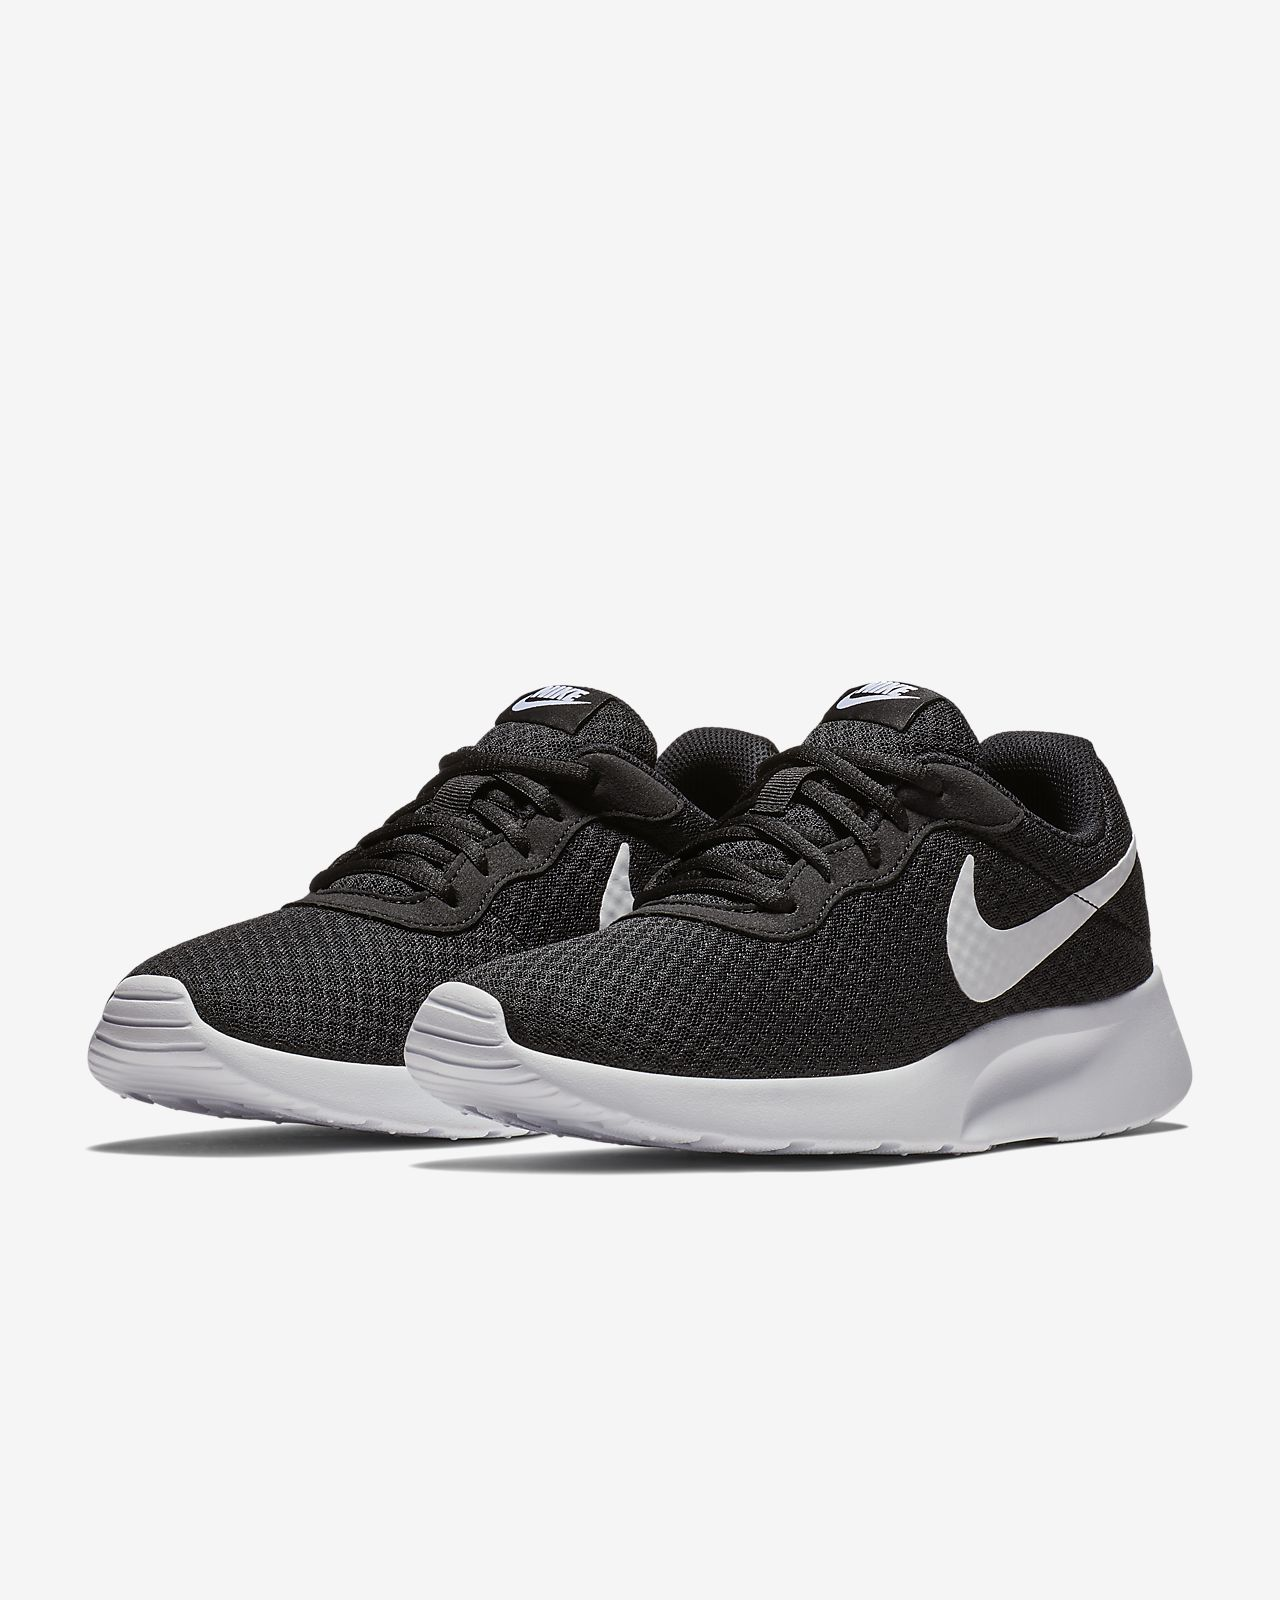 info for 9a229 cdd7c Low Resolution Nike Tanjun Womens Shoe Nike Tanjun Womens Shoe